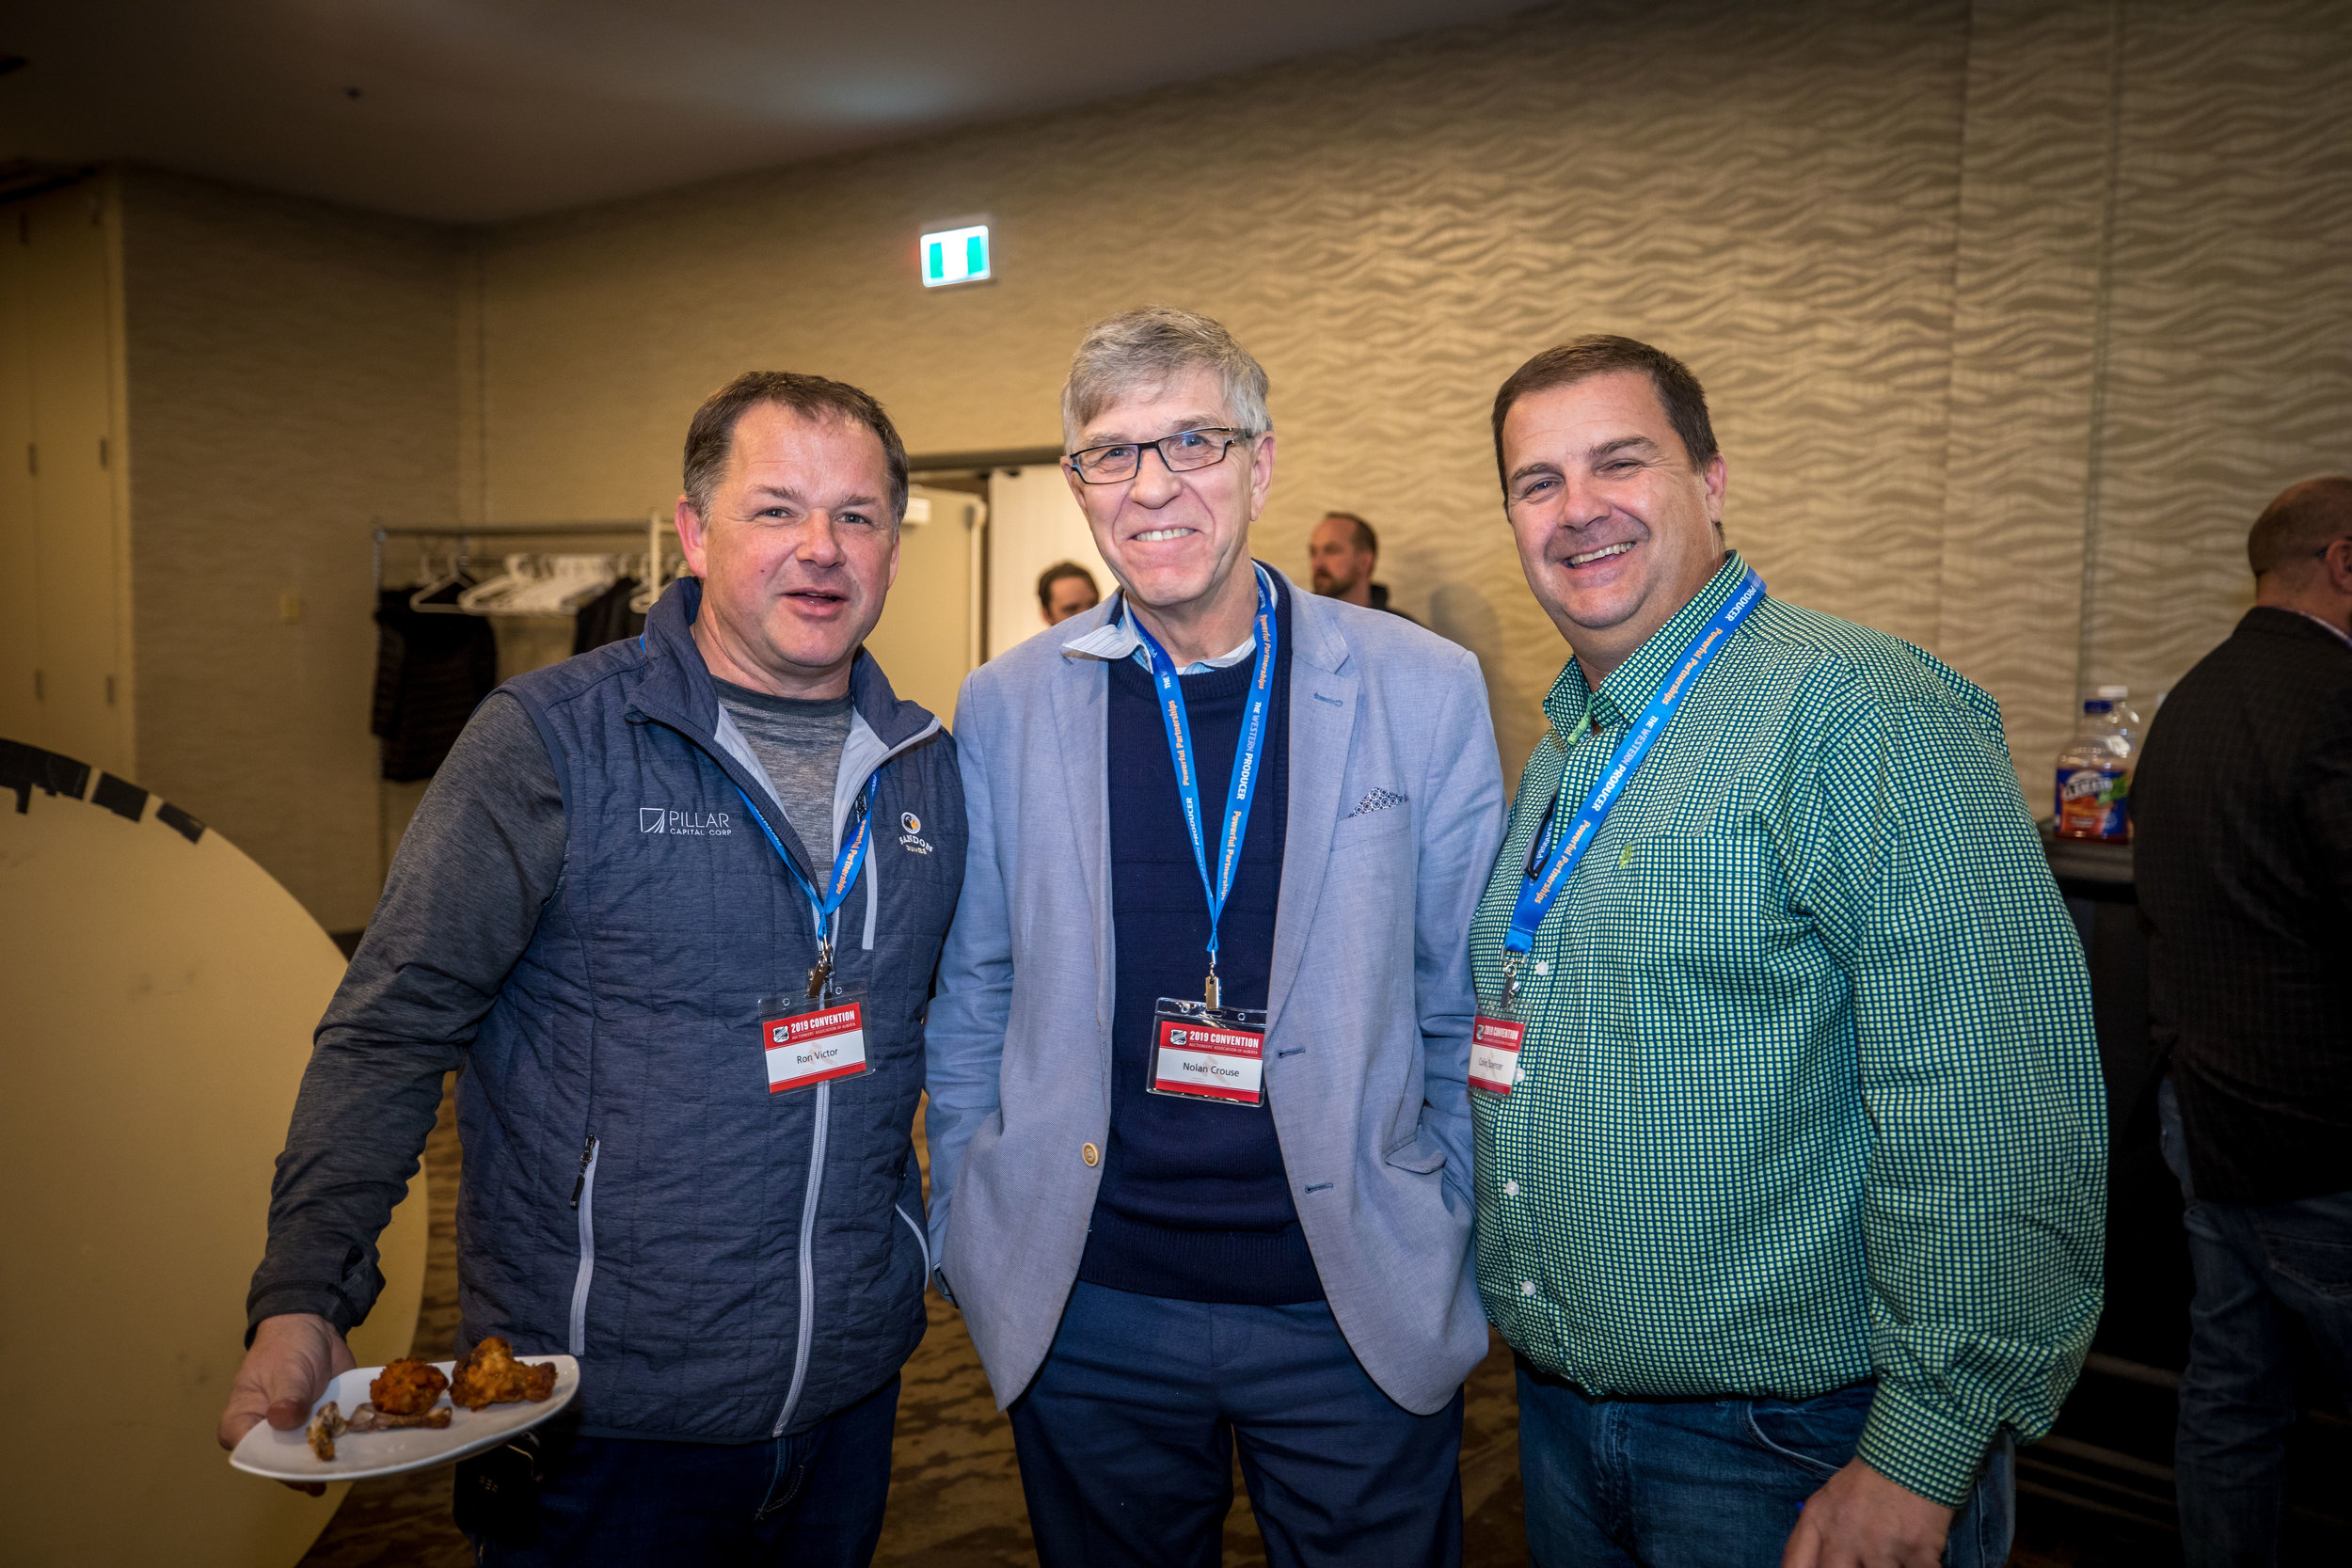 2019 01-31 Alberta Auctioneer Convention Day 01 - Calgary 22.jpg